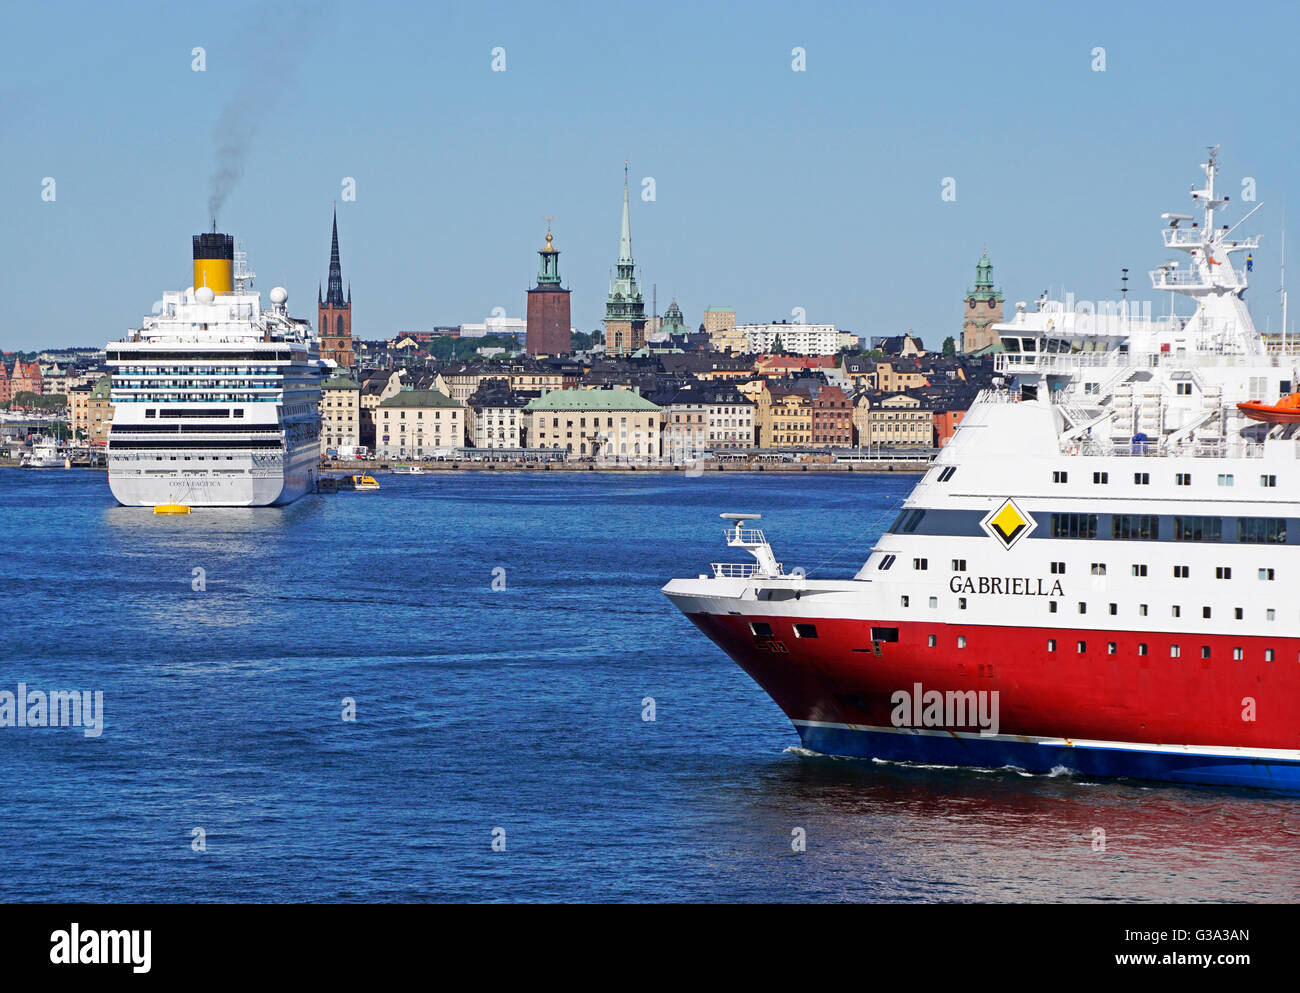 Cruise ships in Stockholm harbor with Gamla Stan (Old Town) in background. - Stock Image